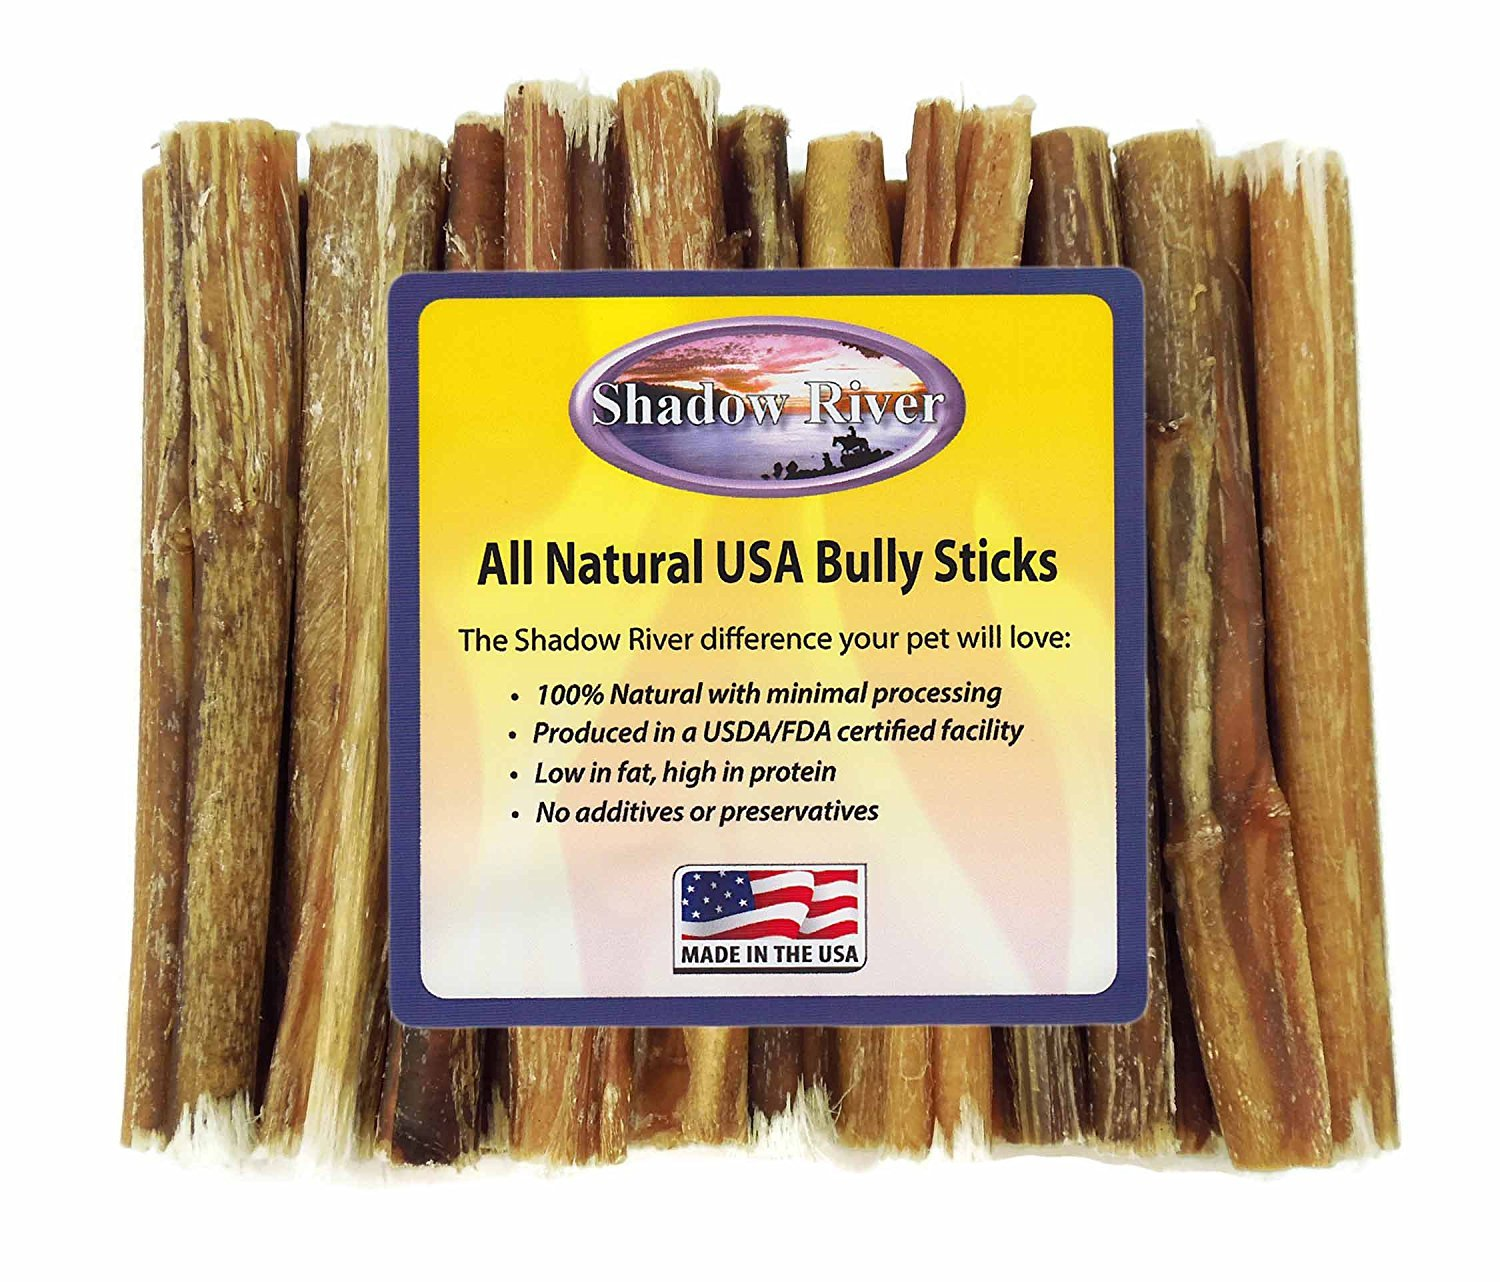 6 Inch Regular 25 Pack Free Range Bully Sticks Product of the USA